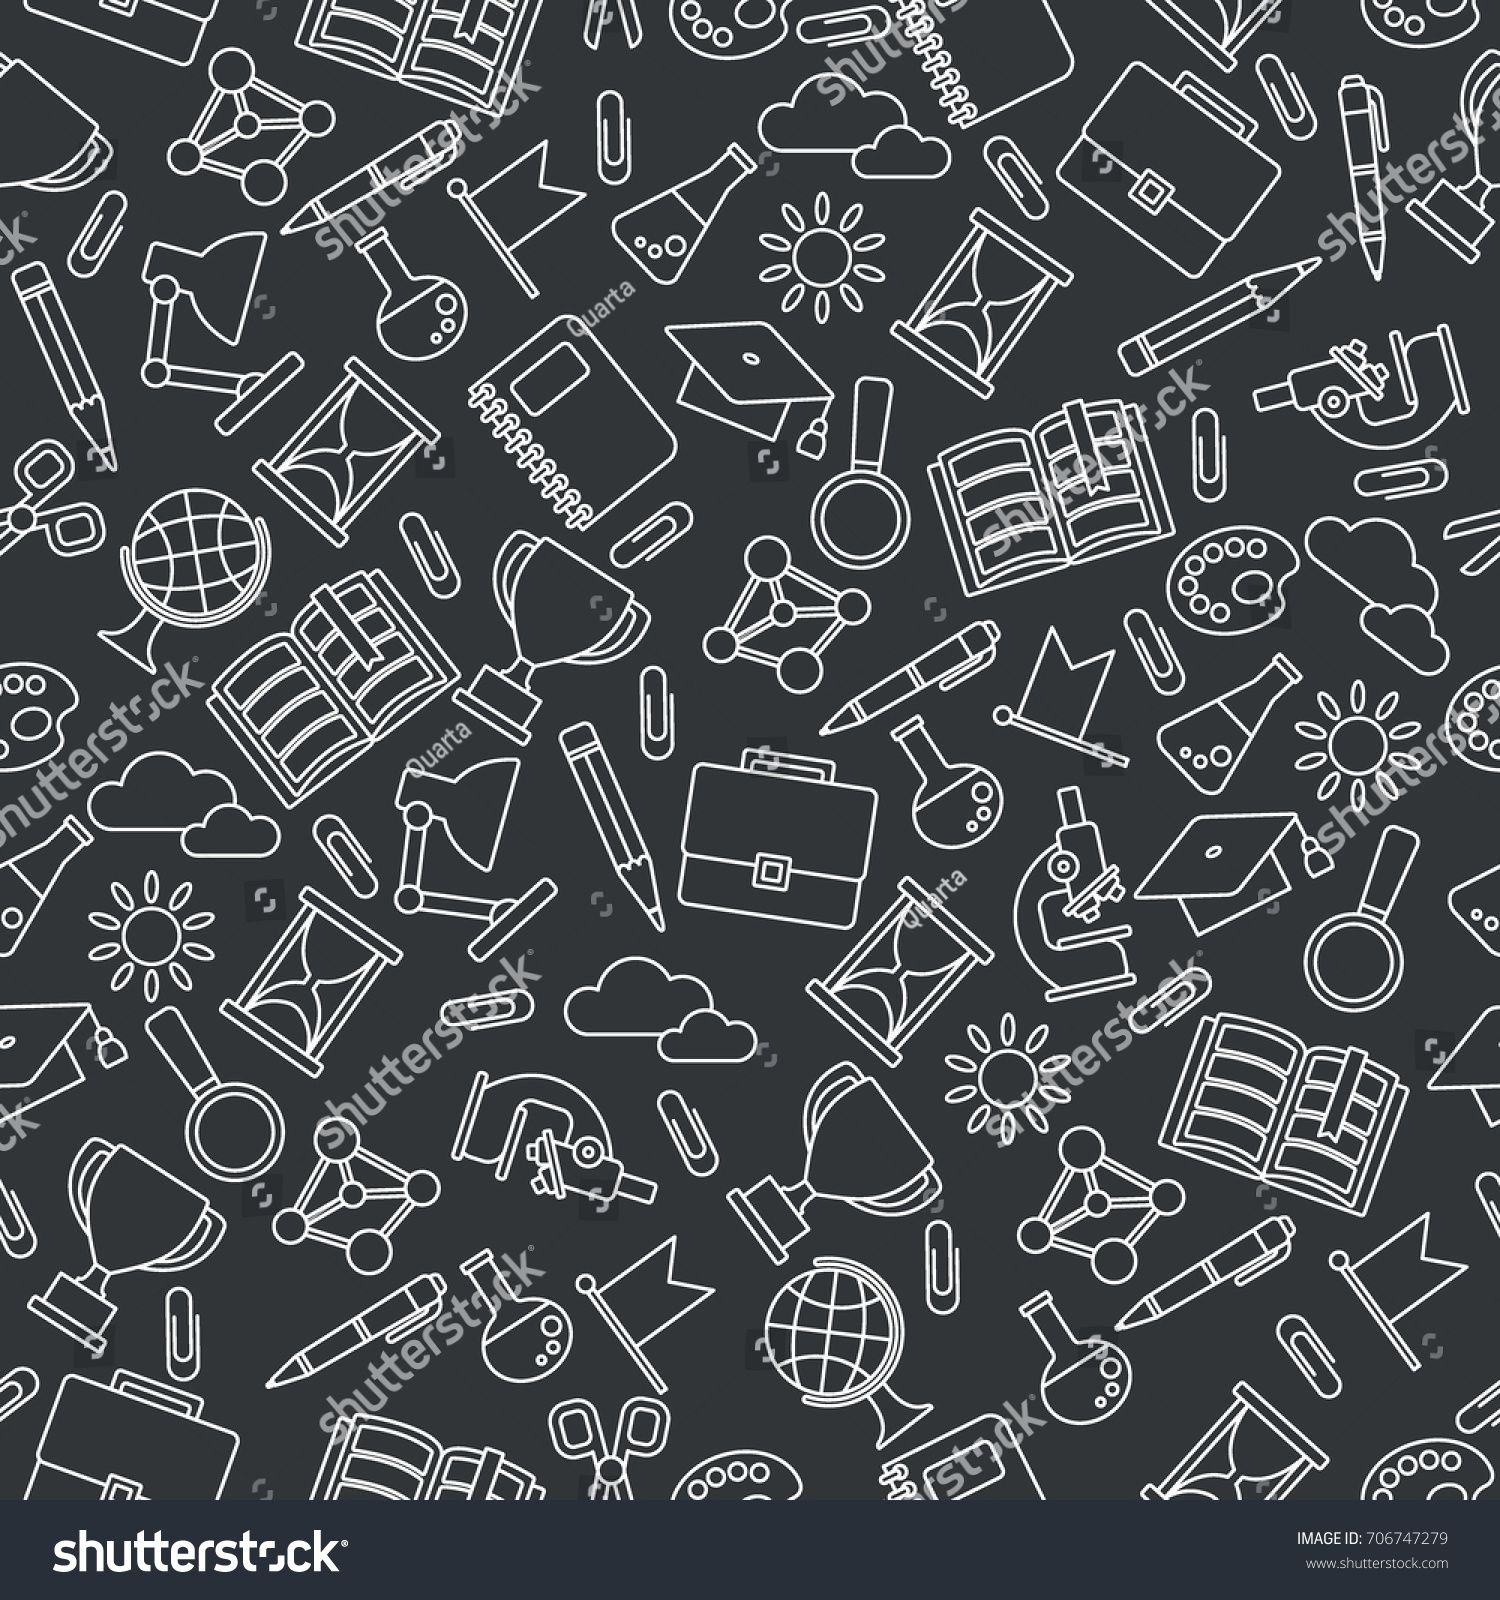 School seamless pattern with education supplies Textures 1500x1600